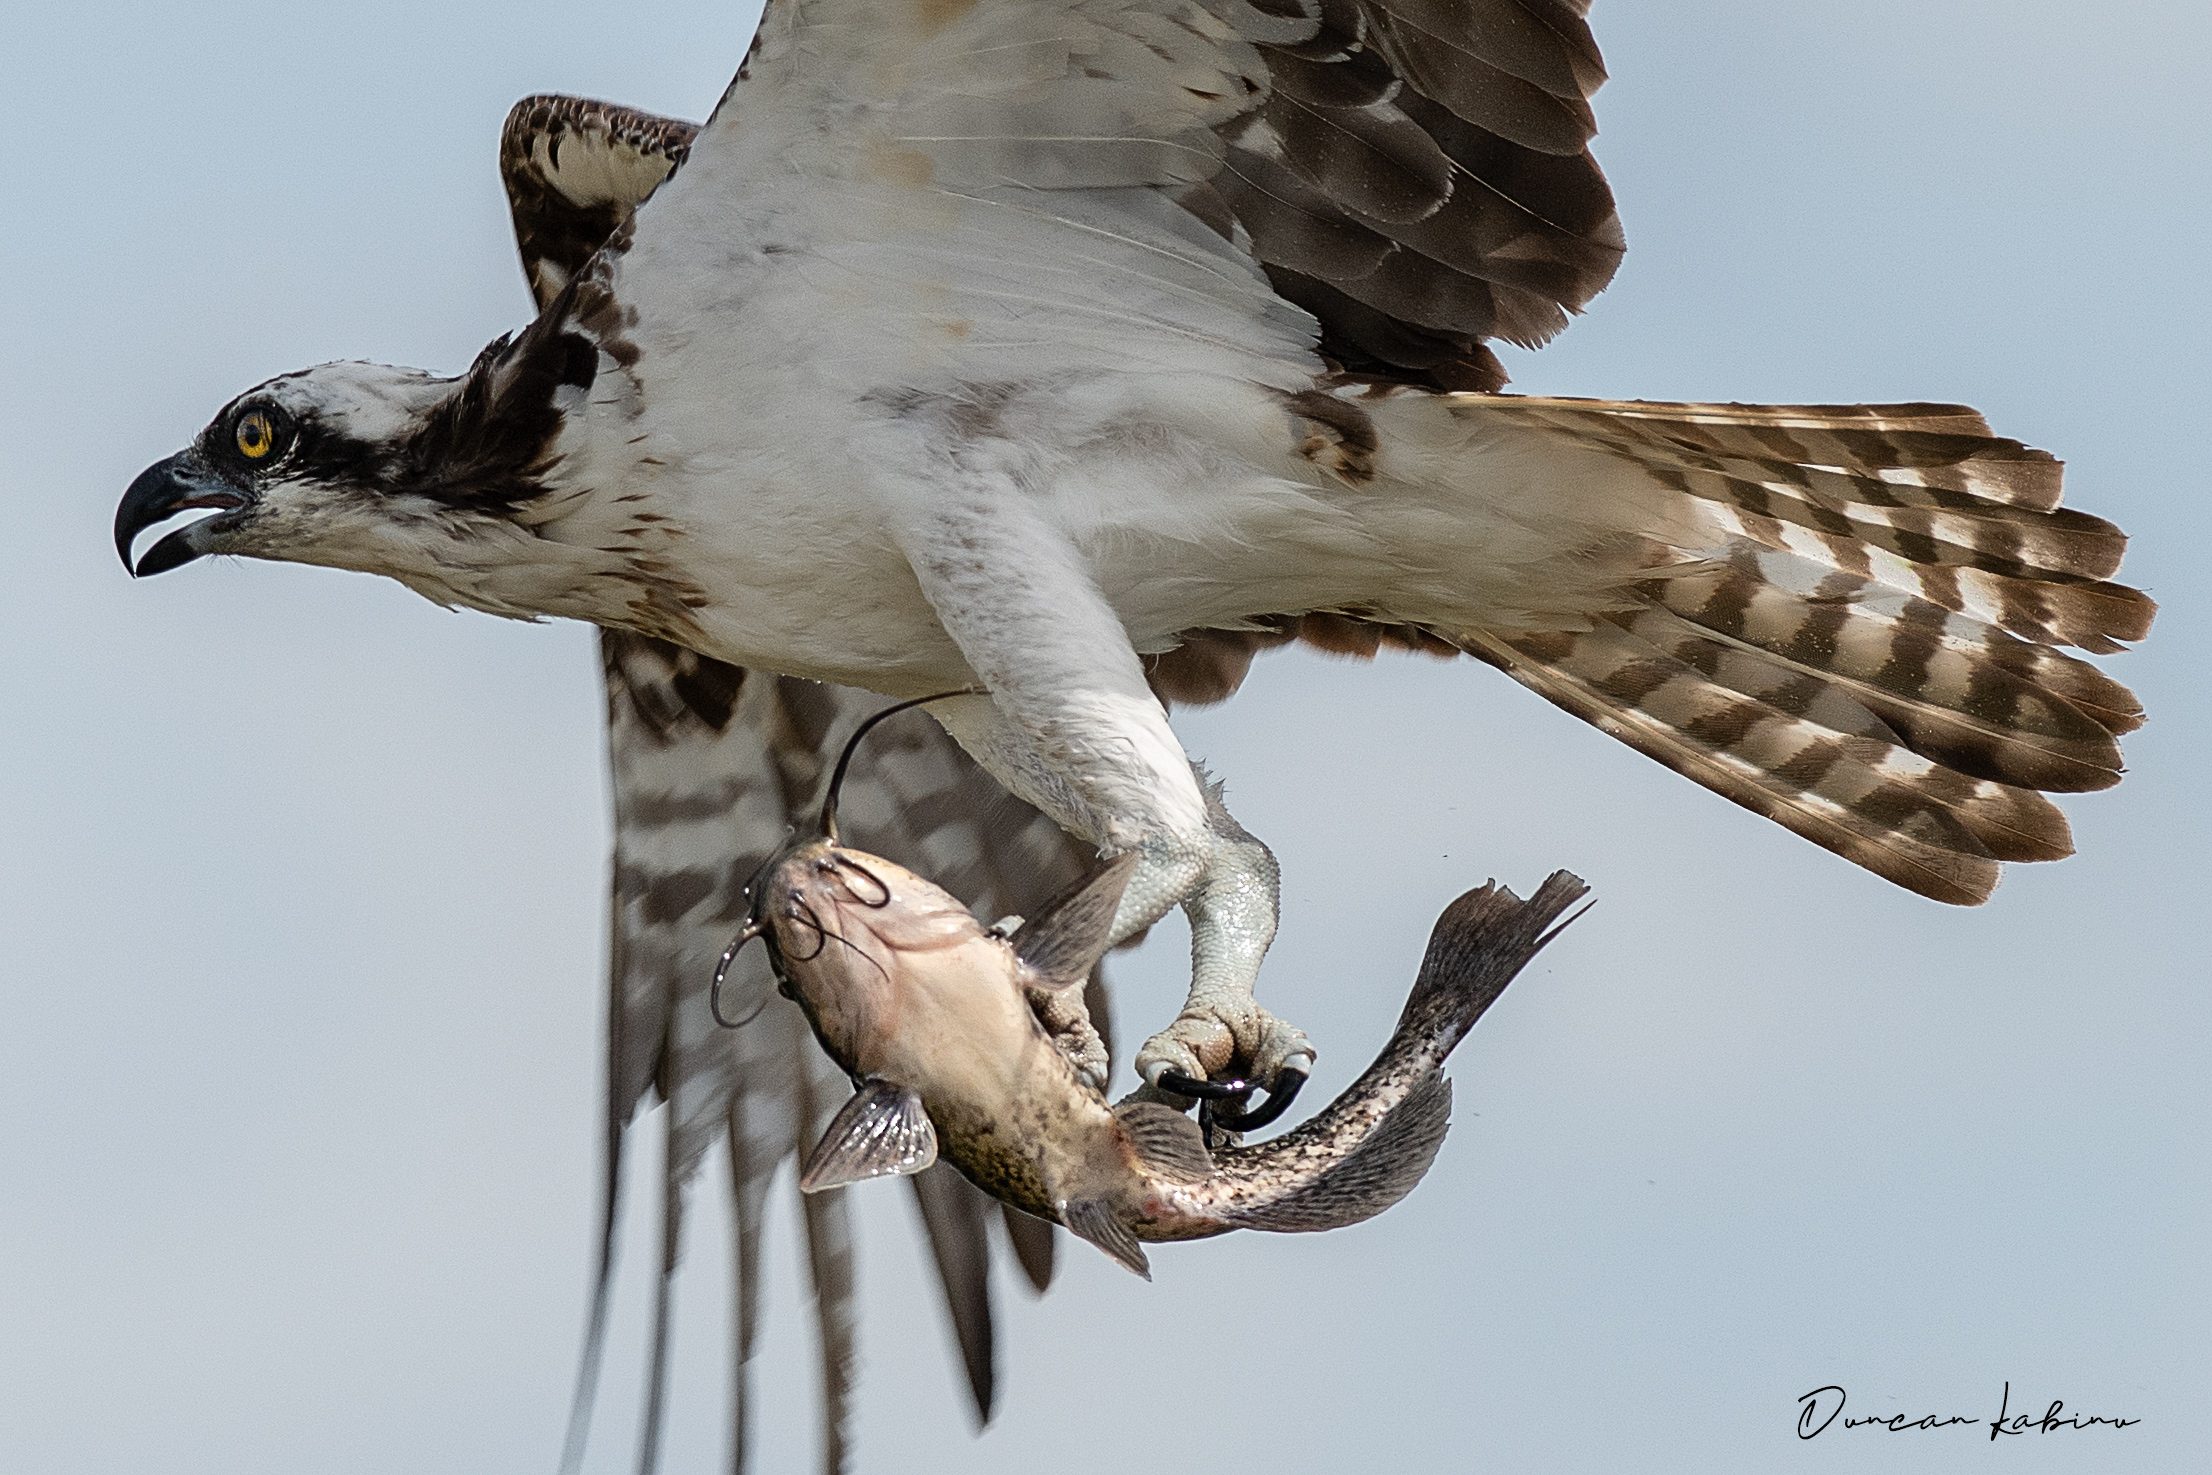 Osprey flying with a fish in its claws